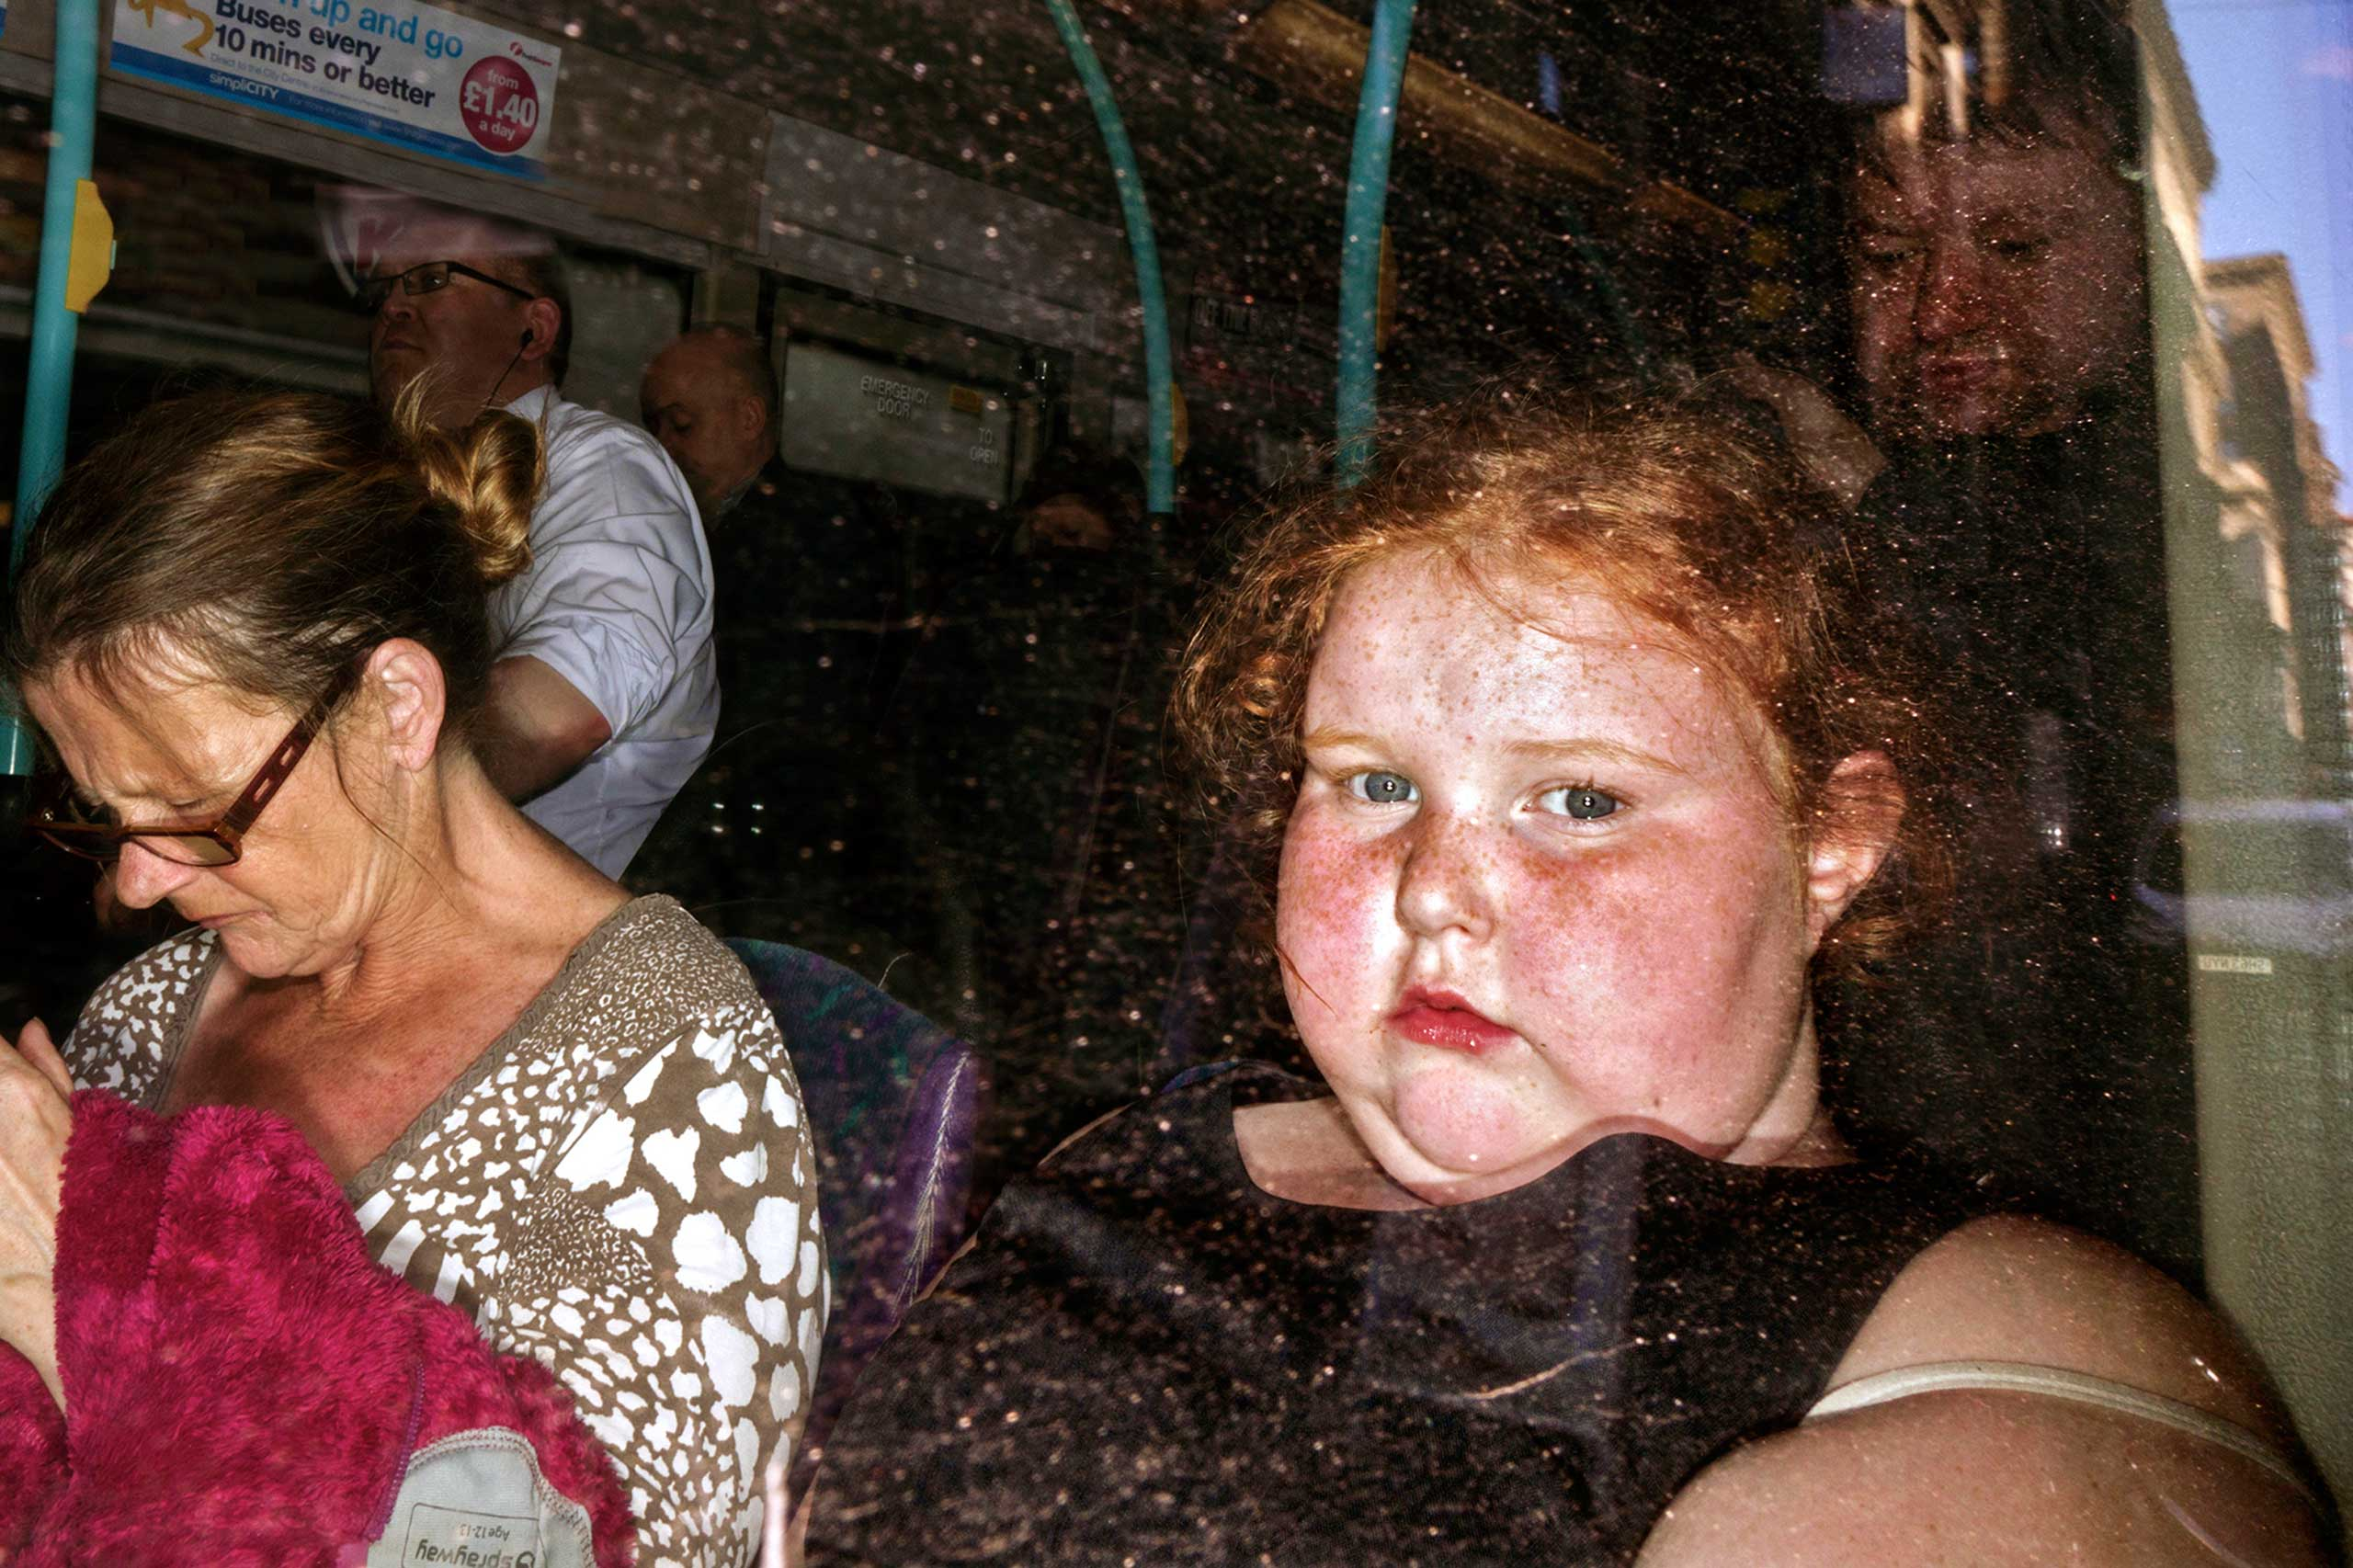 Nominated in the Portraiture category. Dougie Wallace's work on a Glasgow community and the day-to-day lives of its inhabitants.